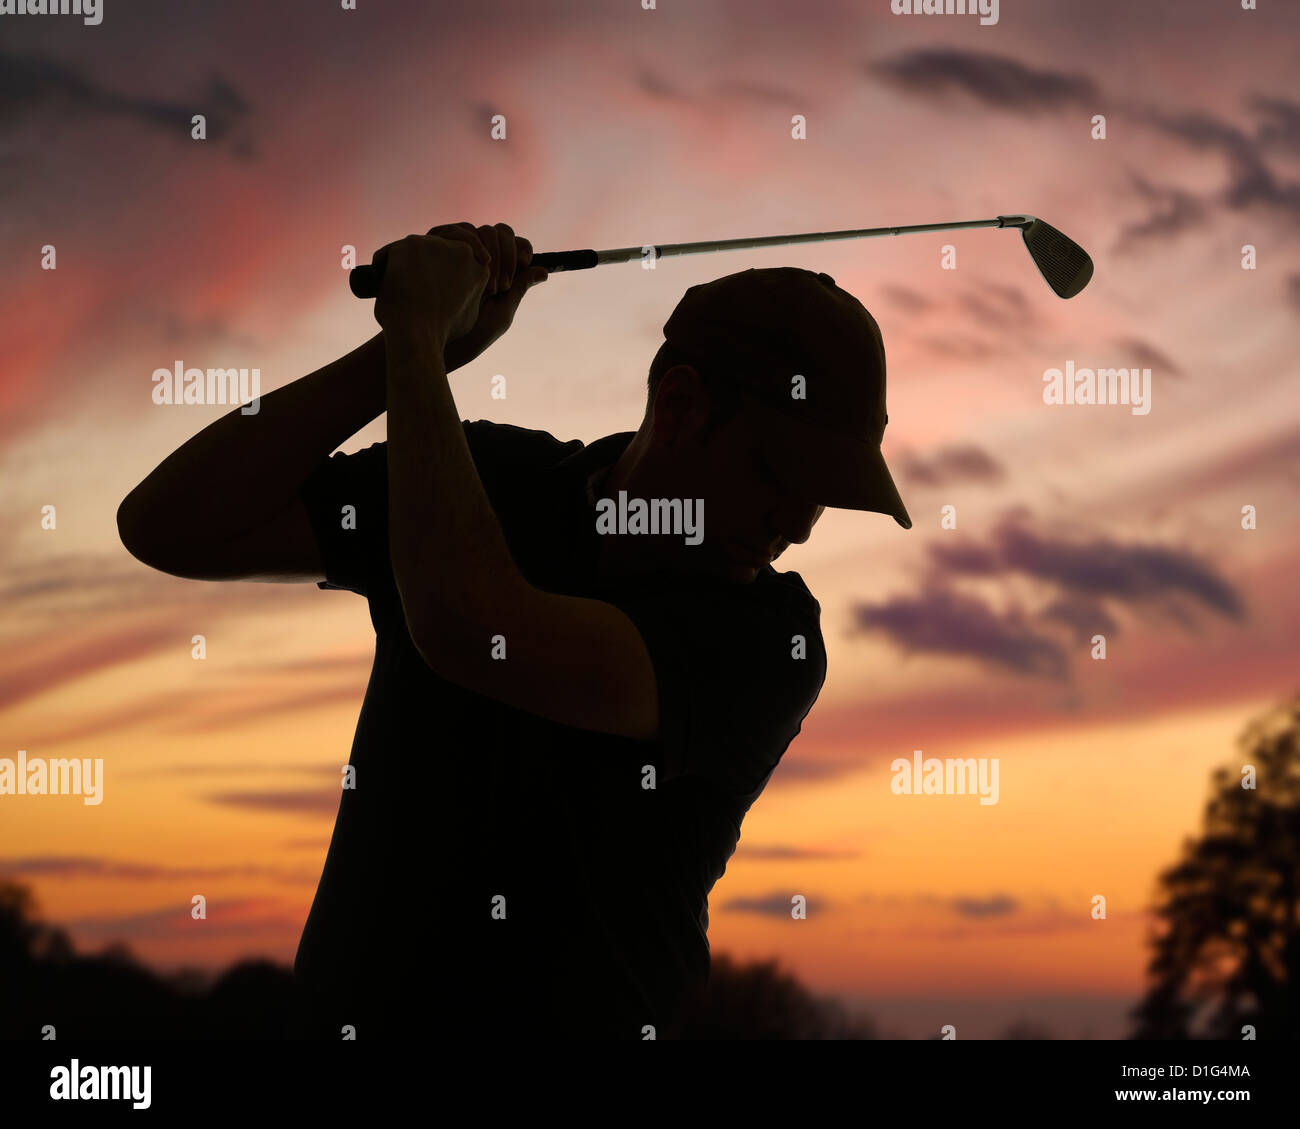 Golfer Swinging a Golf Club Silhouetted Against a Dusk Sky. Close Up. - Stock Image